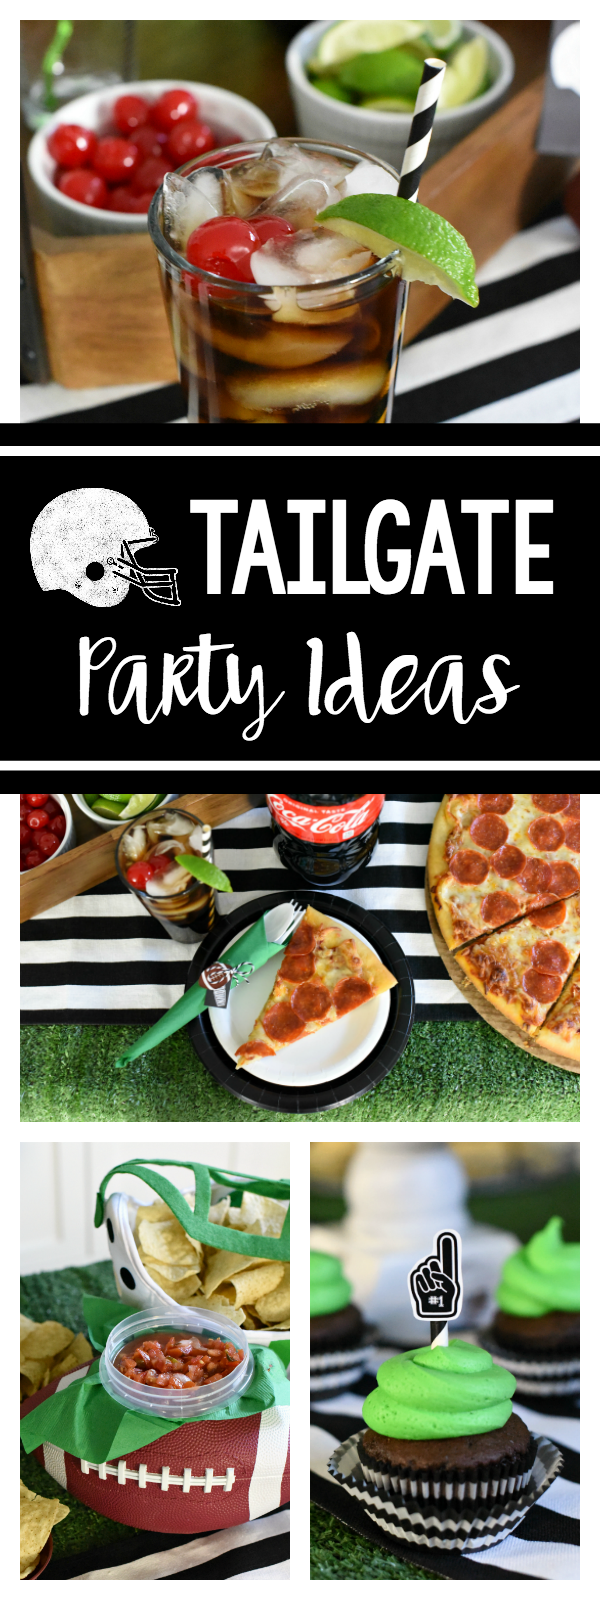 Football Party Ideas for a Tailgate Party-Football Decorations, Food, and Drinks